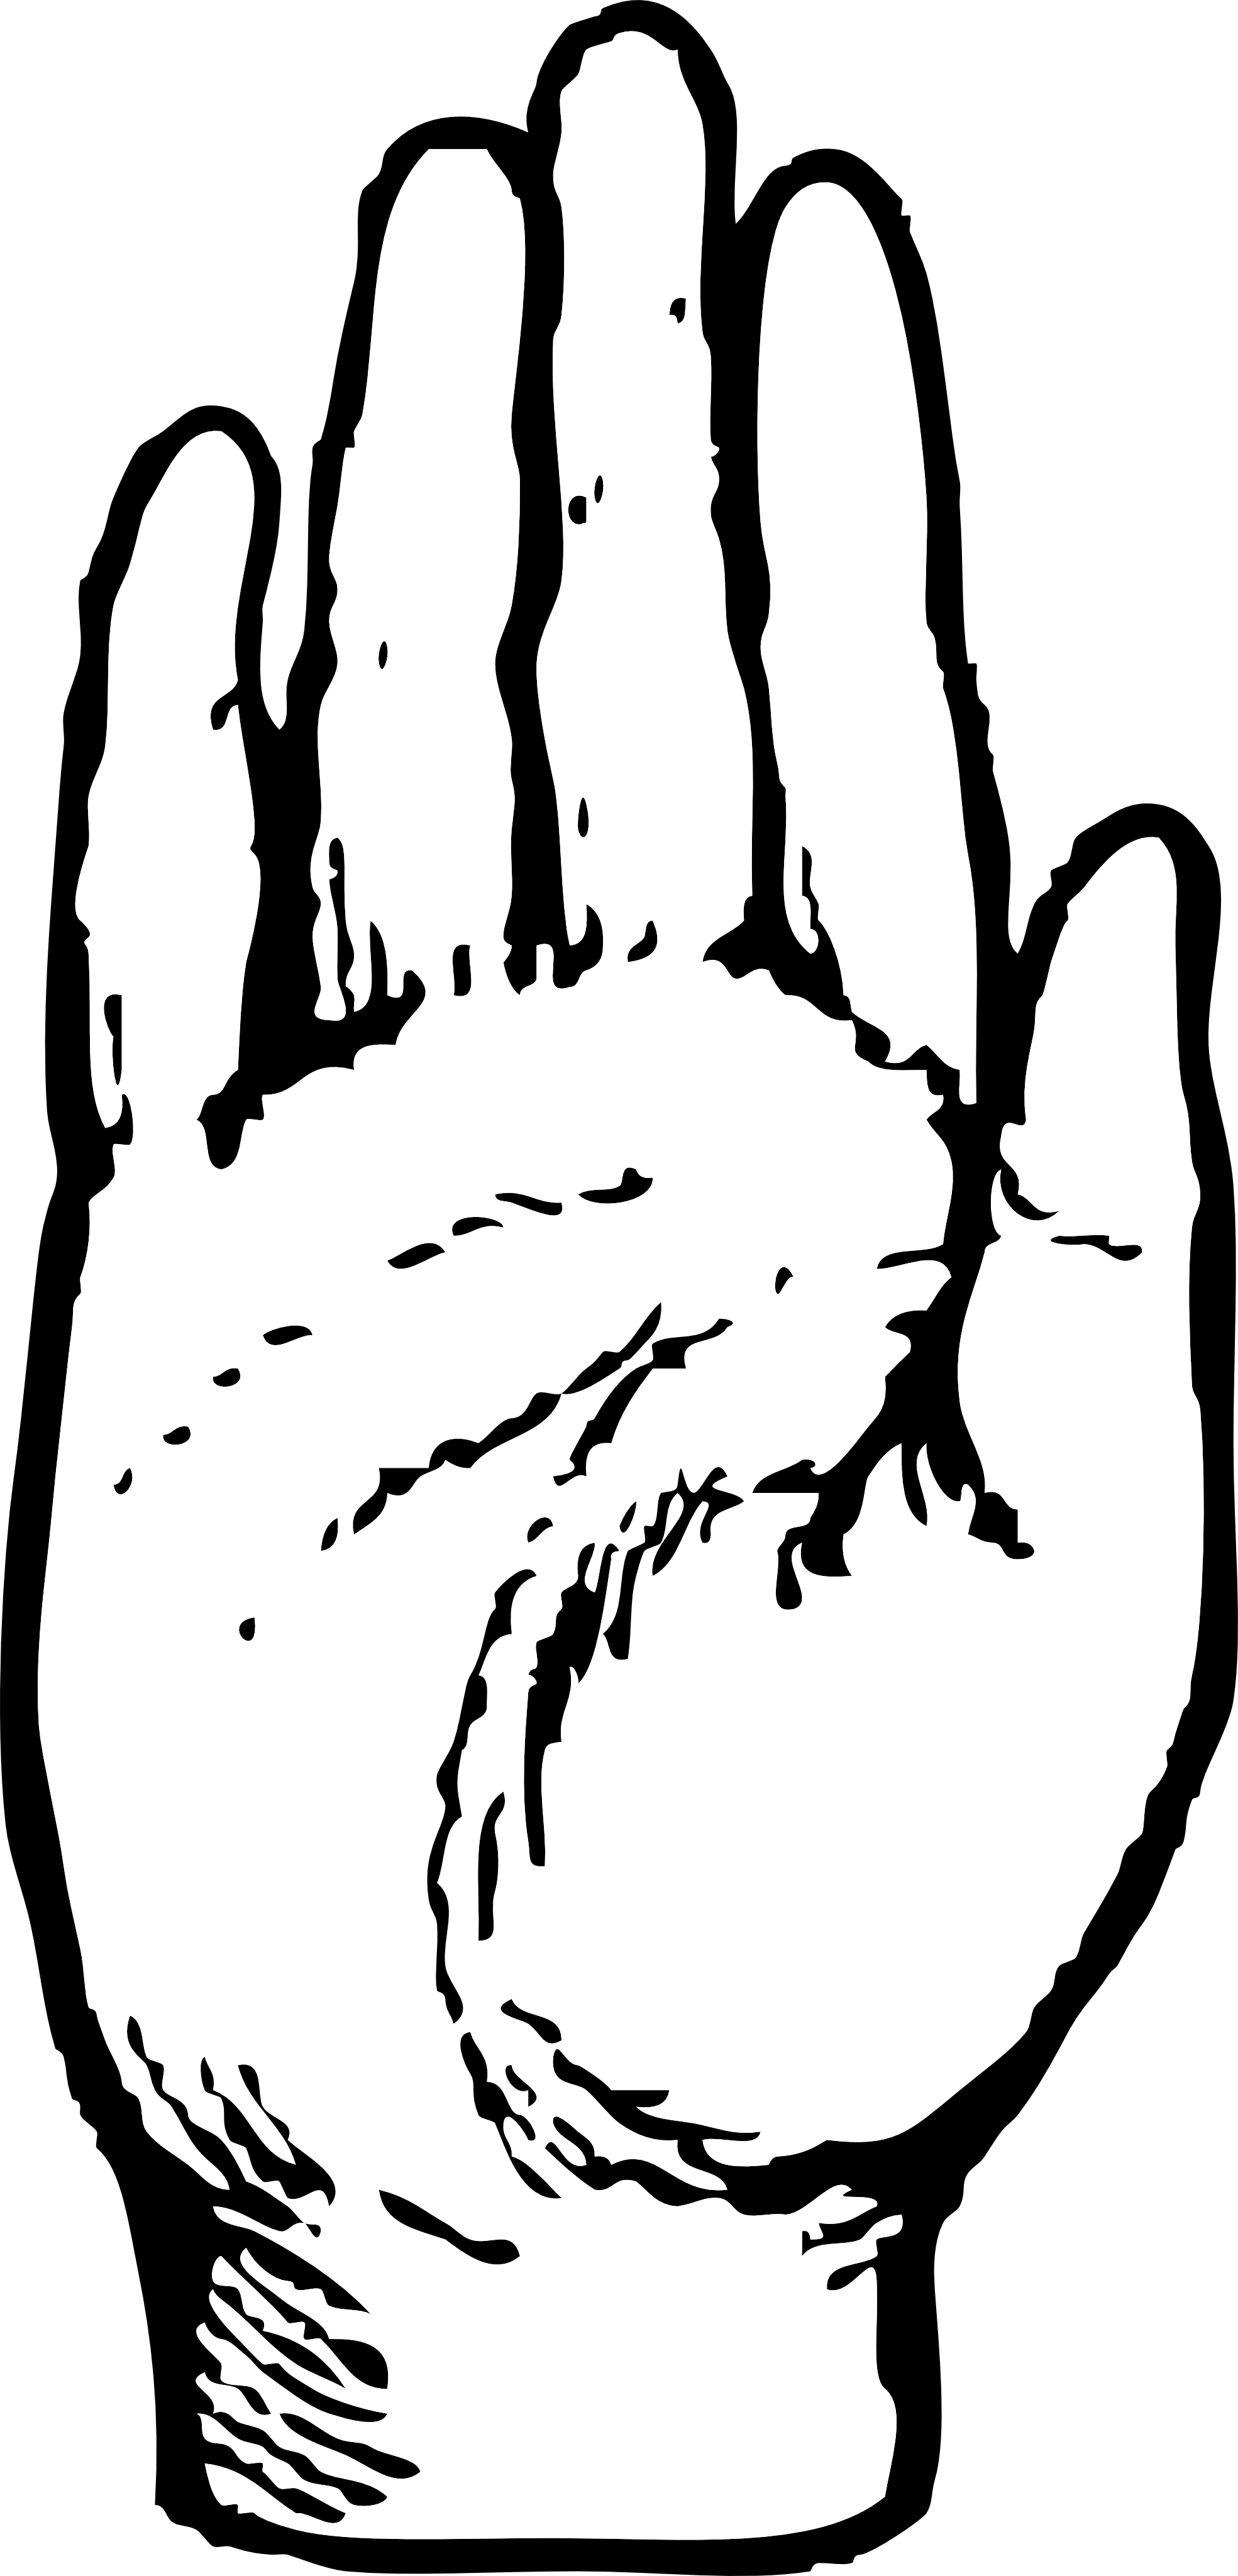 Handshake clipart helping hand.  collection of kids